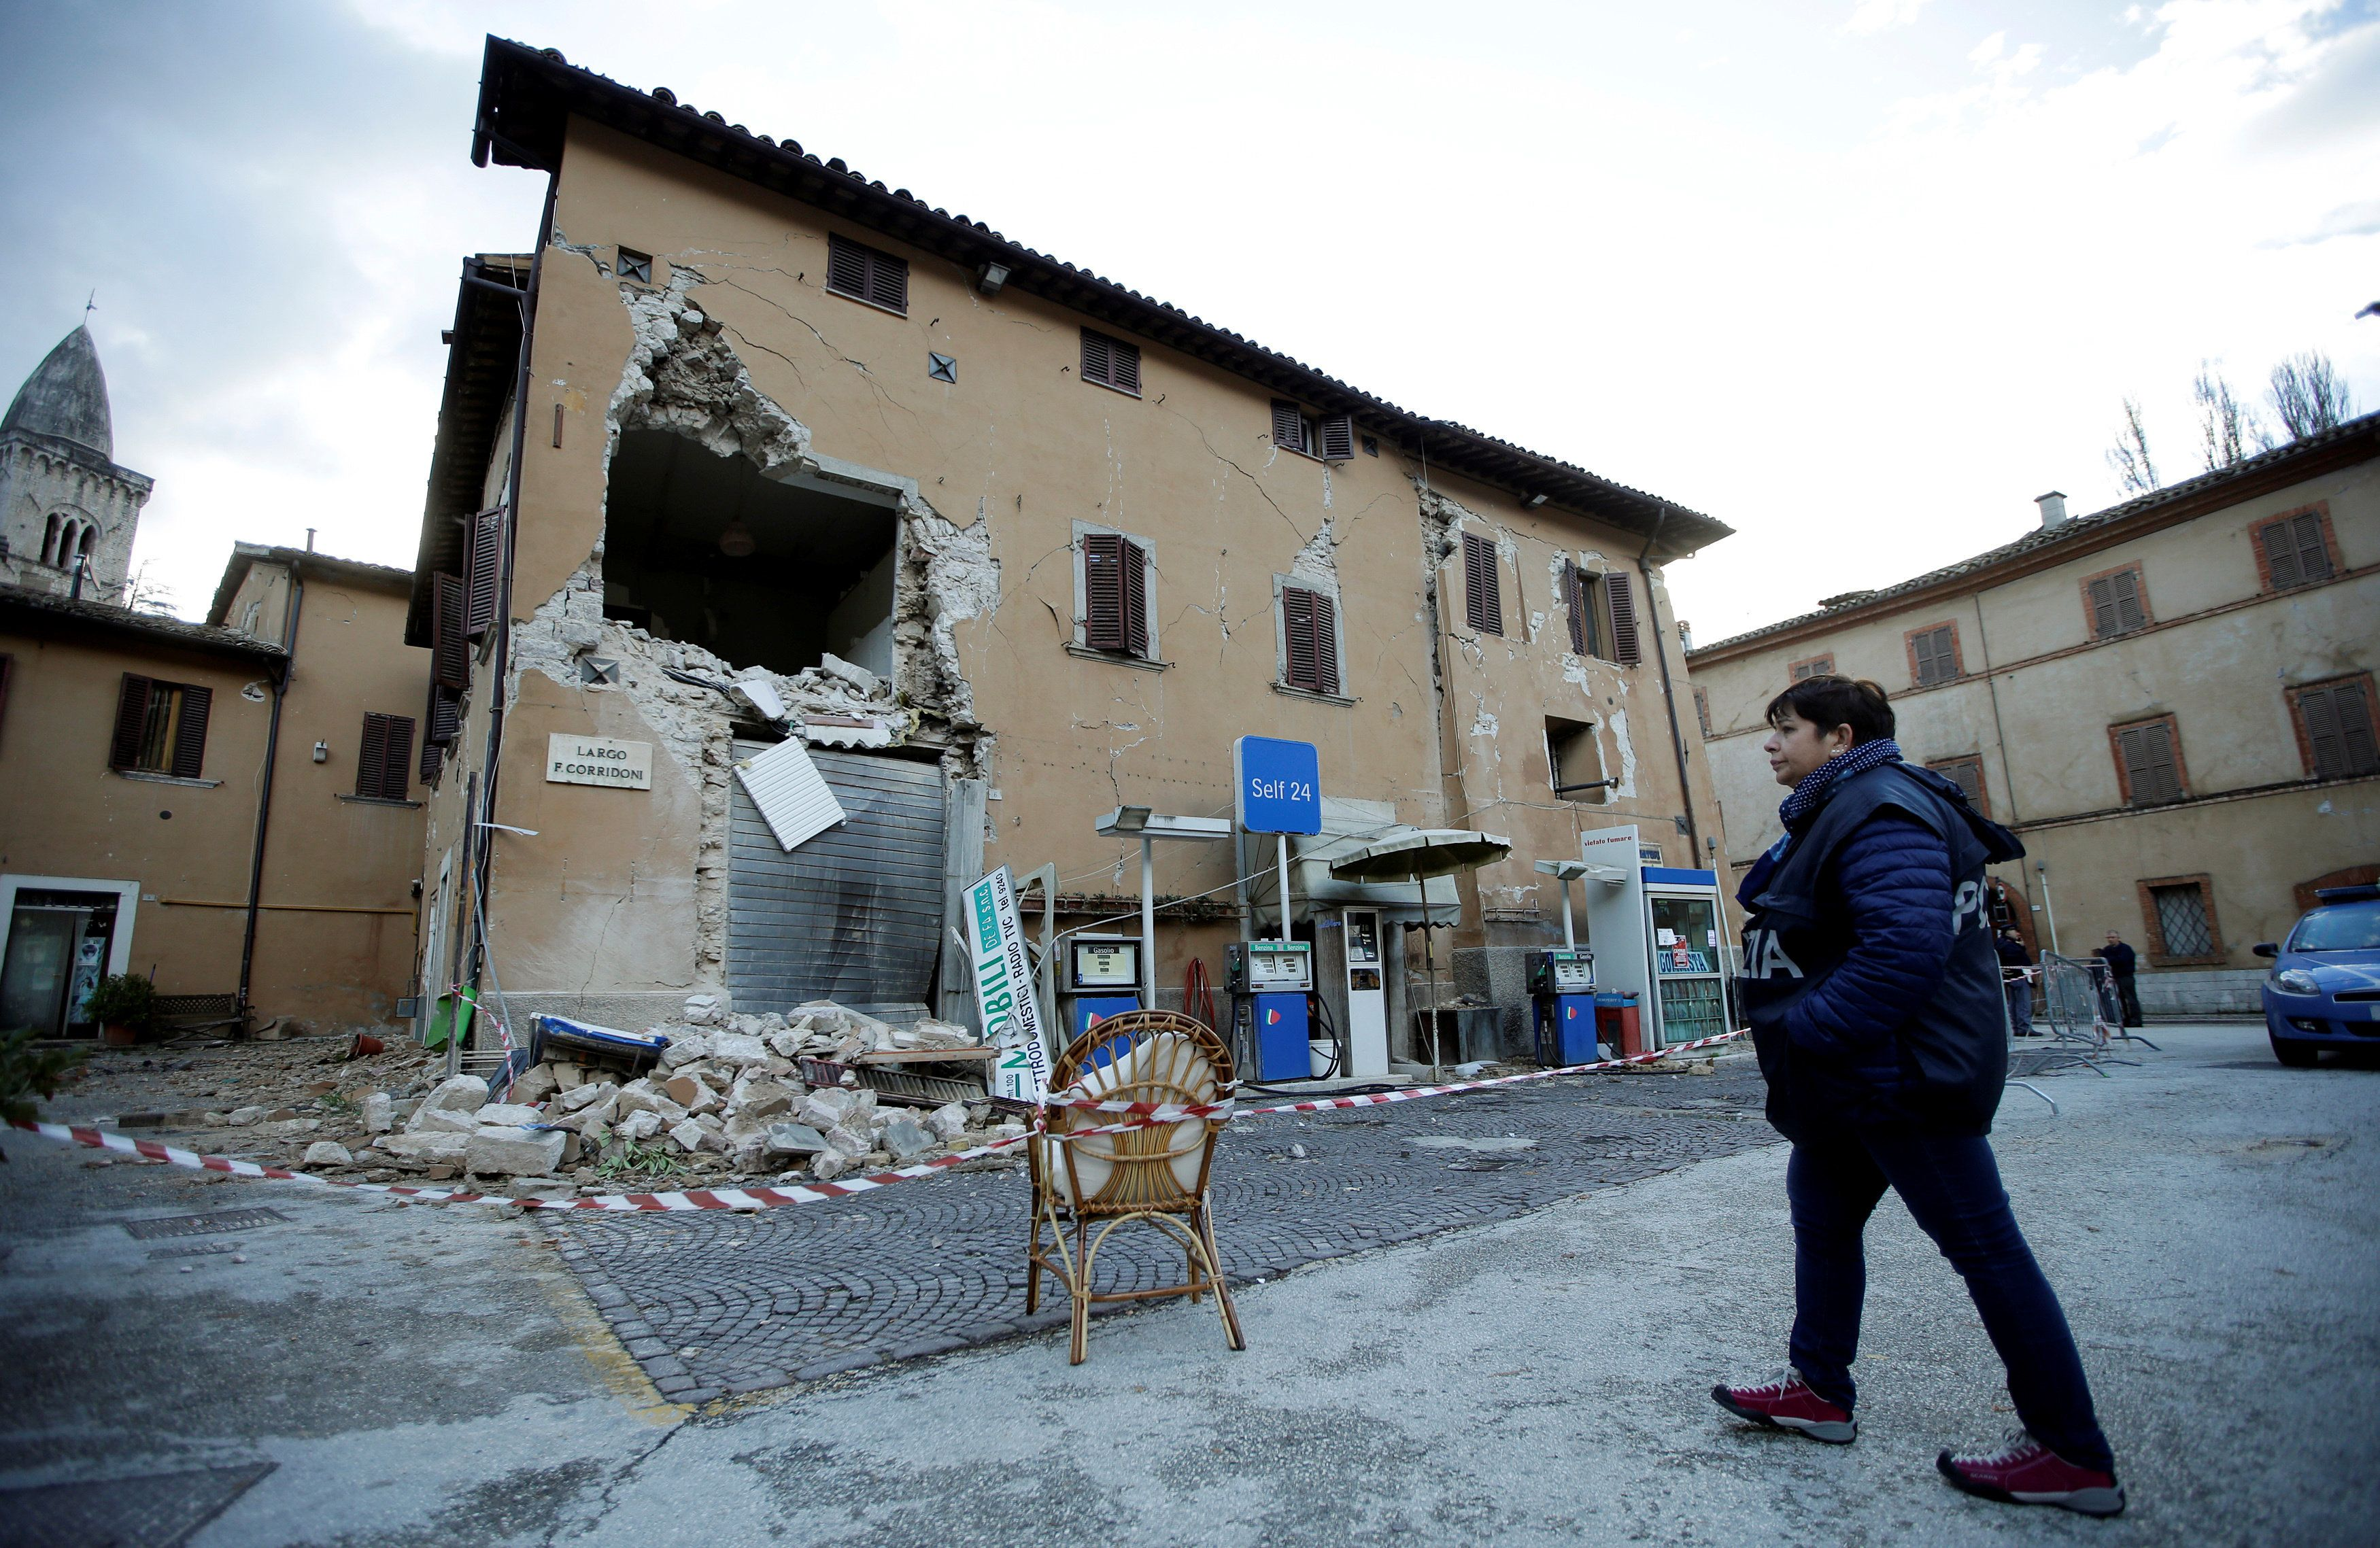 A police officer stands next to a collapsed building after an earthquake in Visso, central Italy on Thursday.